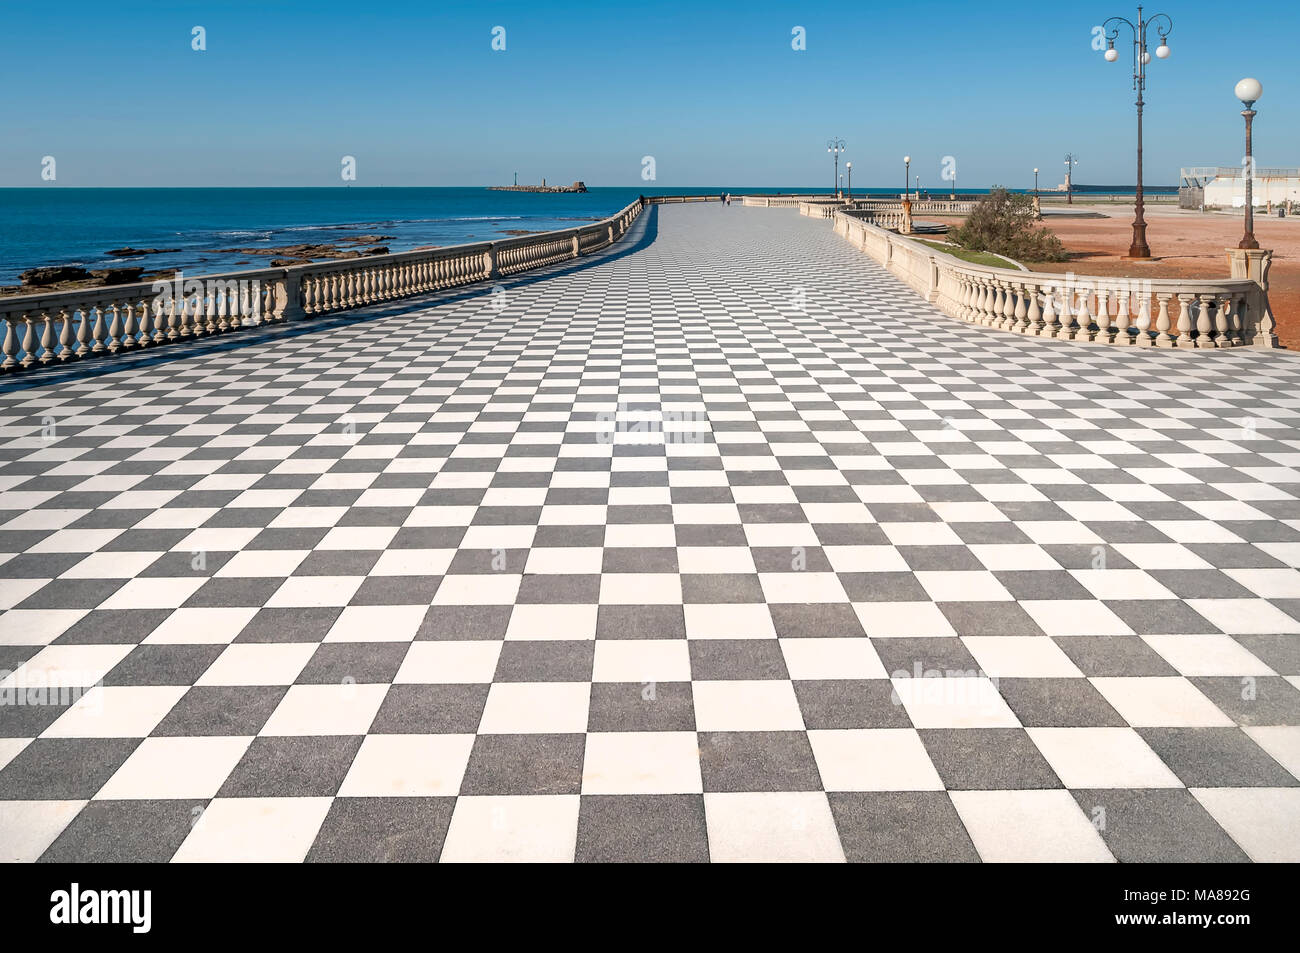 View of the famous Terrazza Mascagni in Livorno, Tuscany, Italy ...